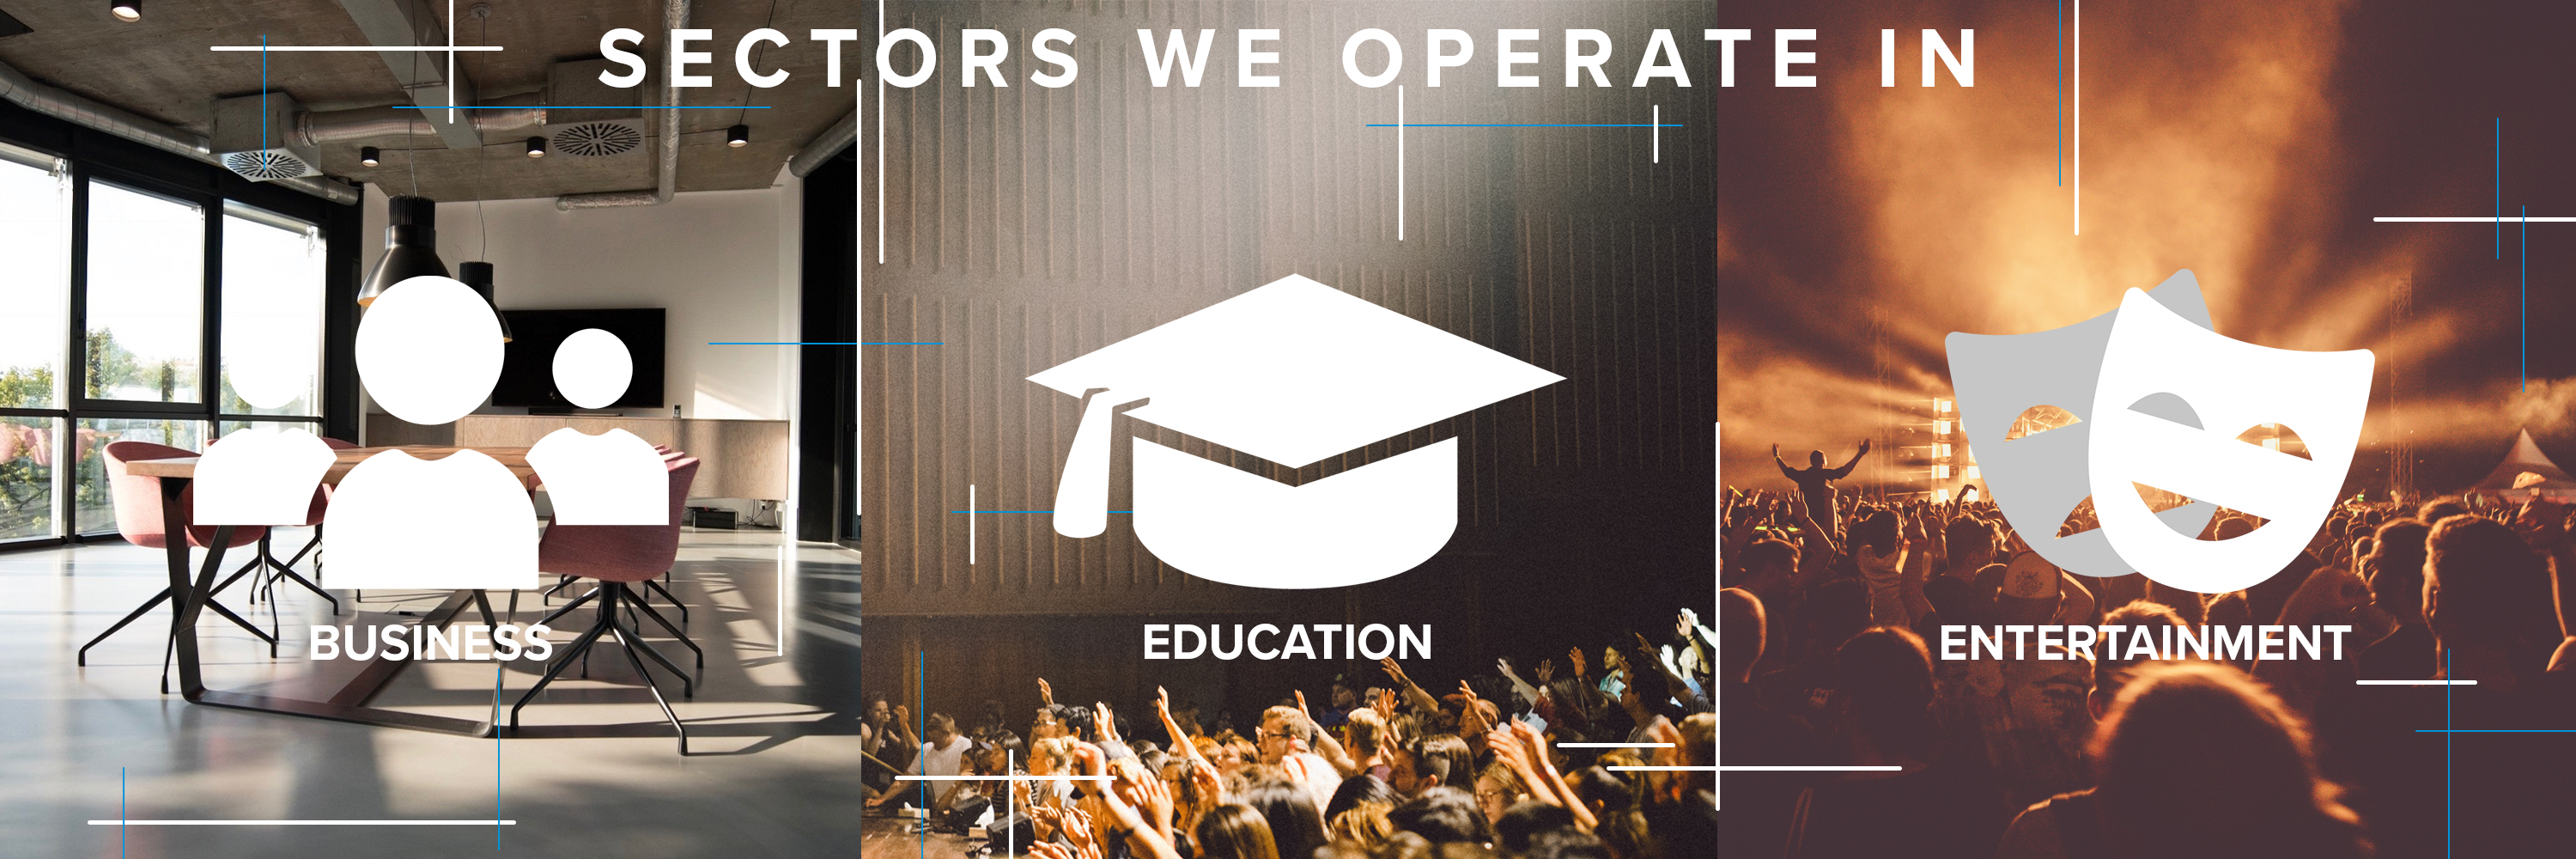 R&W Sectors we operate in, business education and entertainment